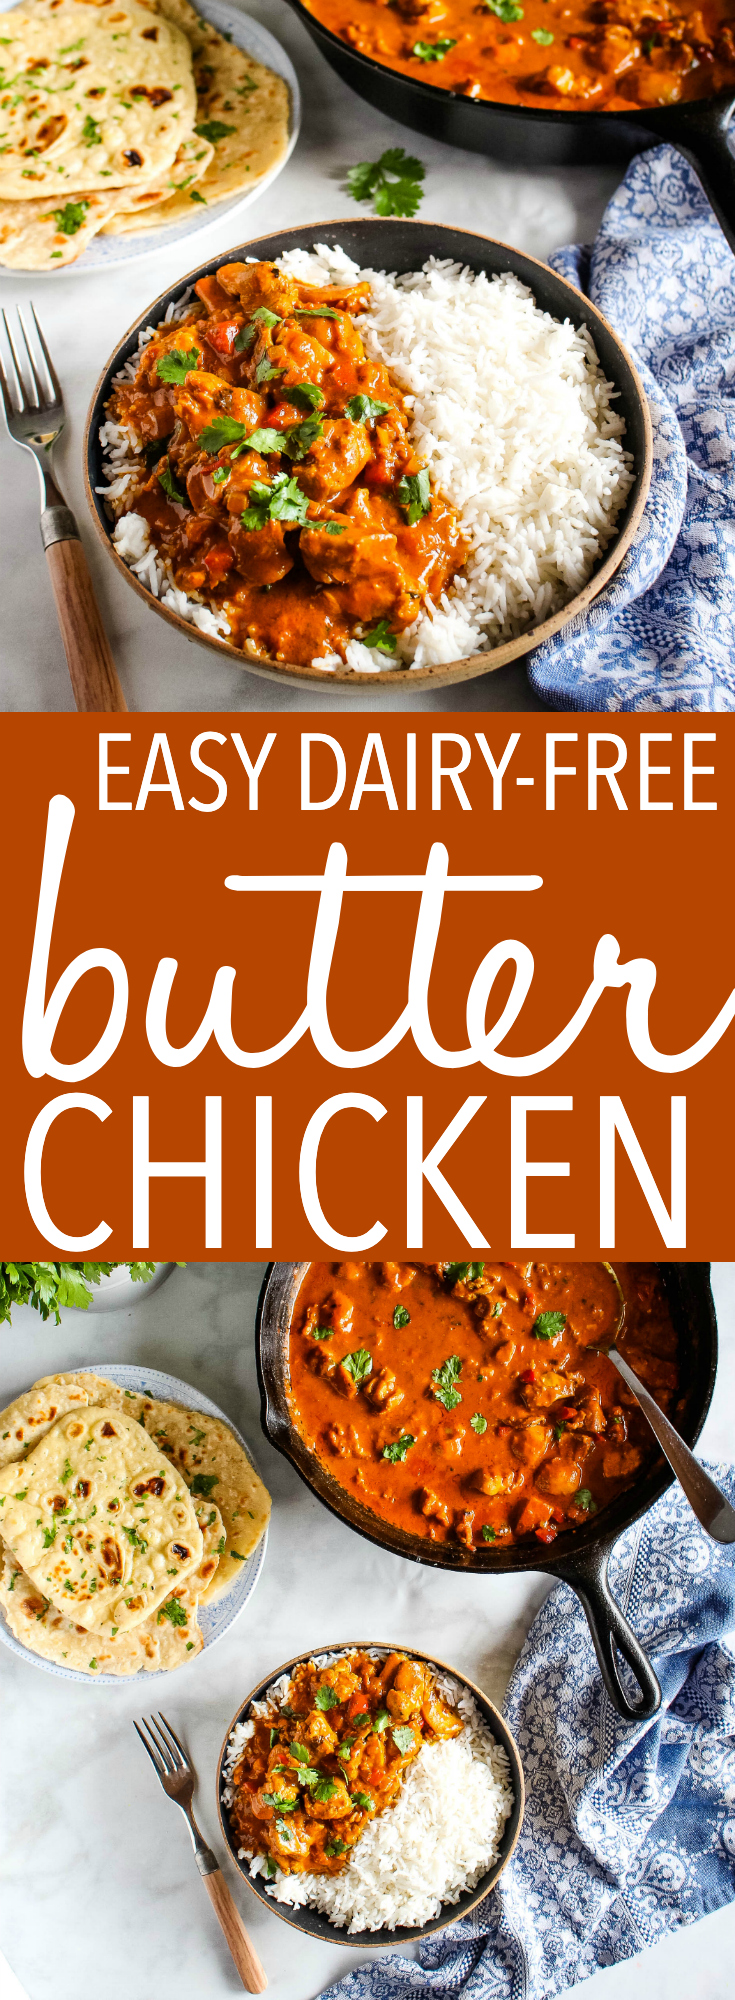 This Easy Dairy-Free Butter Chicken is the perfect Indian-style easy weeknight meal with no dairy! Healthy ingredients & better than take-out! Recipe from thebusybaker.ca! #butterchicken #dairyfree #takeout #restaurant #Indianfood #homemade #healthy #familymeal #weeknightmeal via @busybakerblog